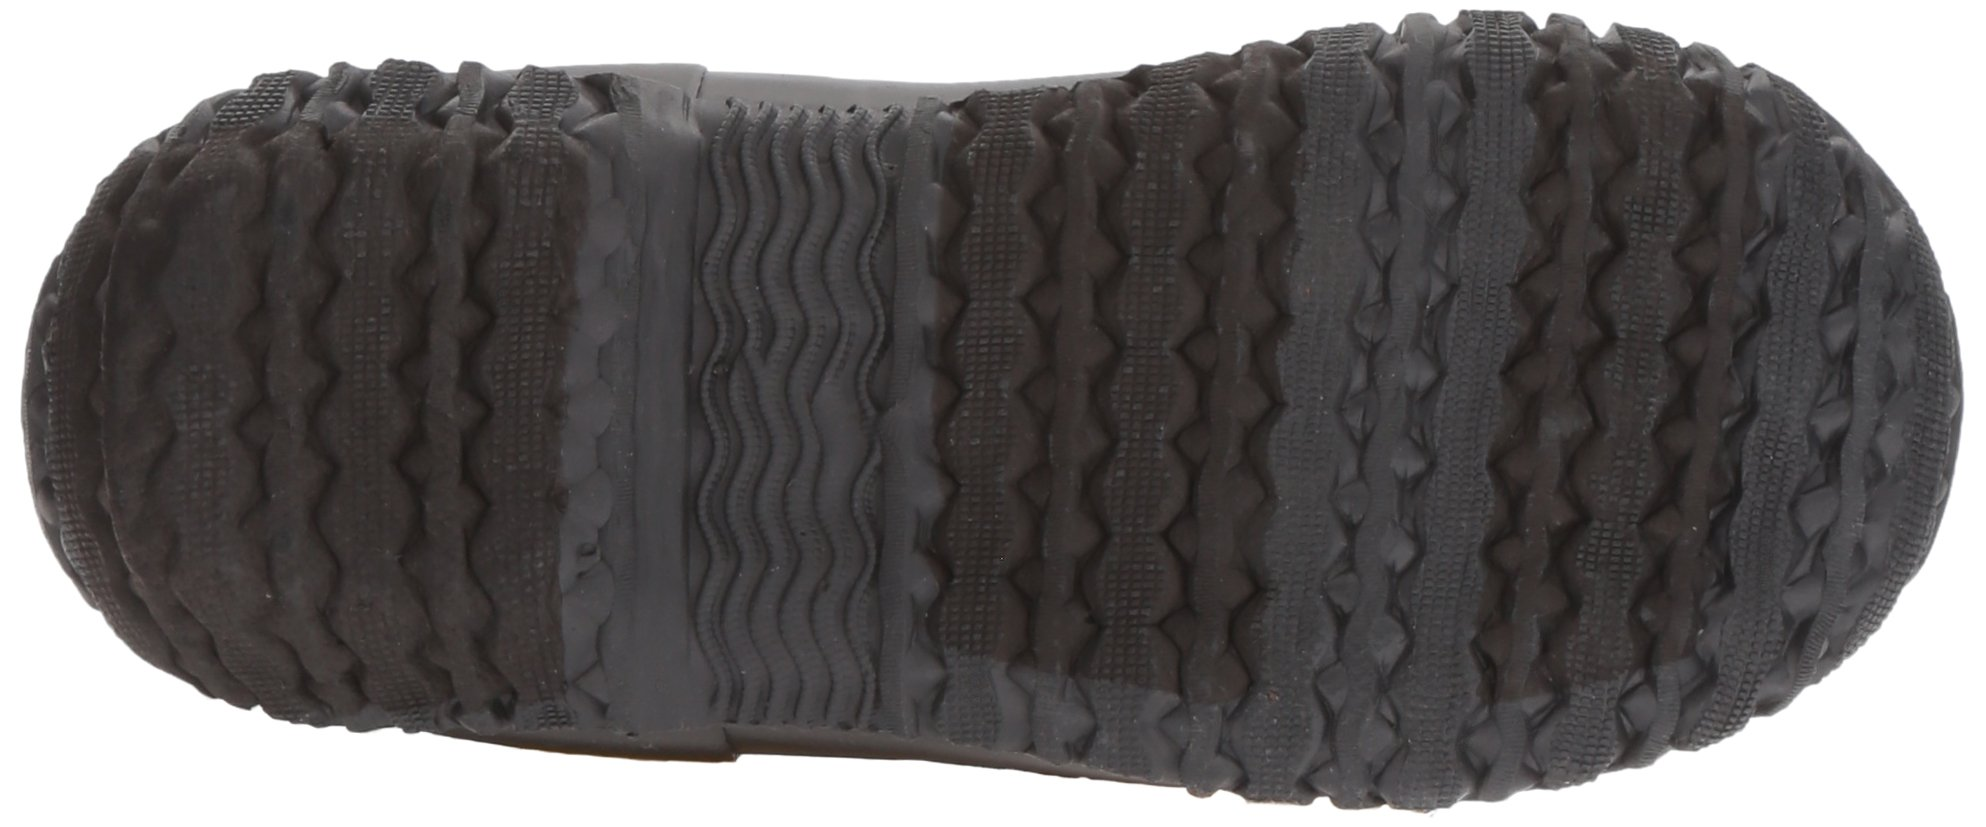 Bogs Durham Kids/Toddler Waterproof Snow Boot for Boys and Girls, Crackle Print/Black/Multi, 12 M US Little Kid by Bogs (Image #3)